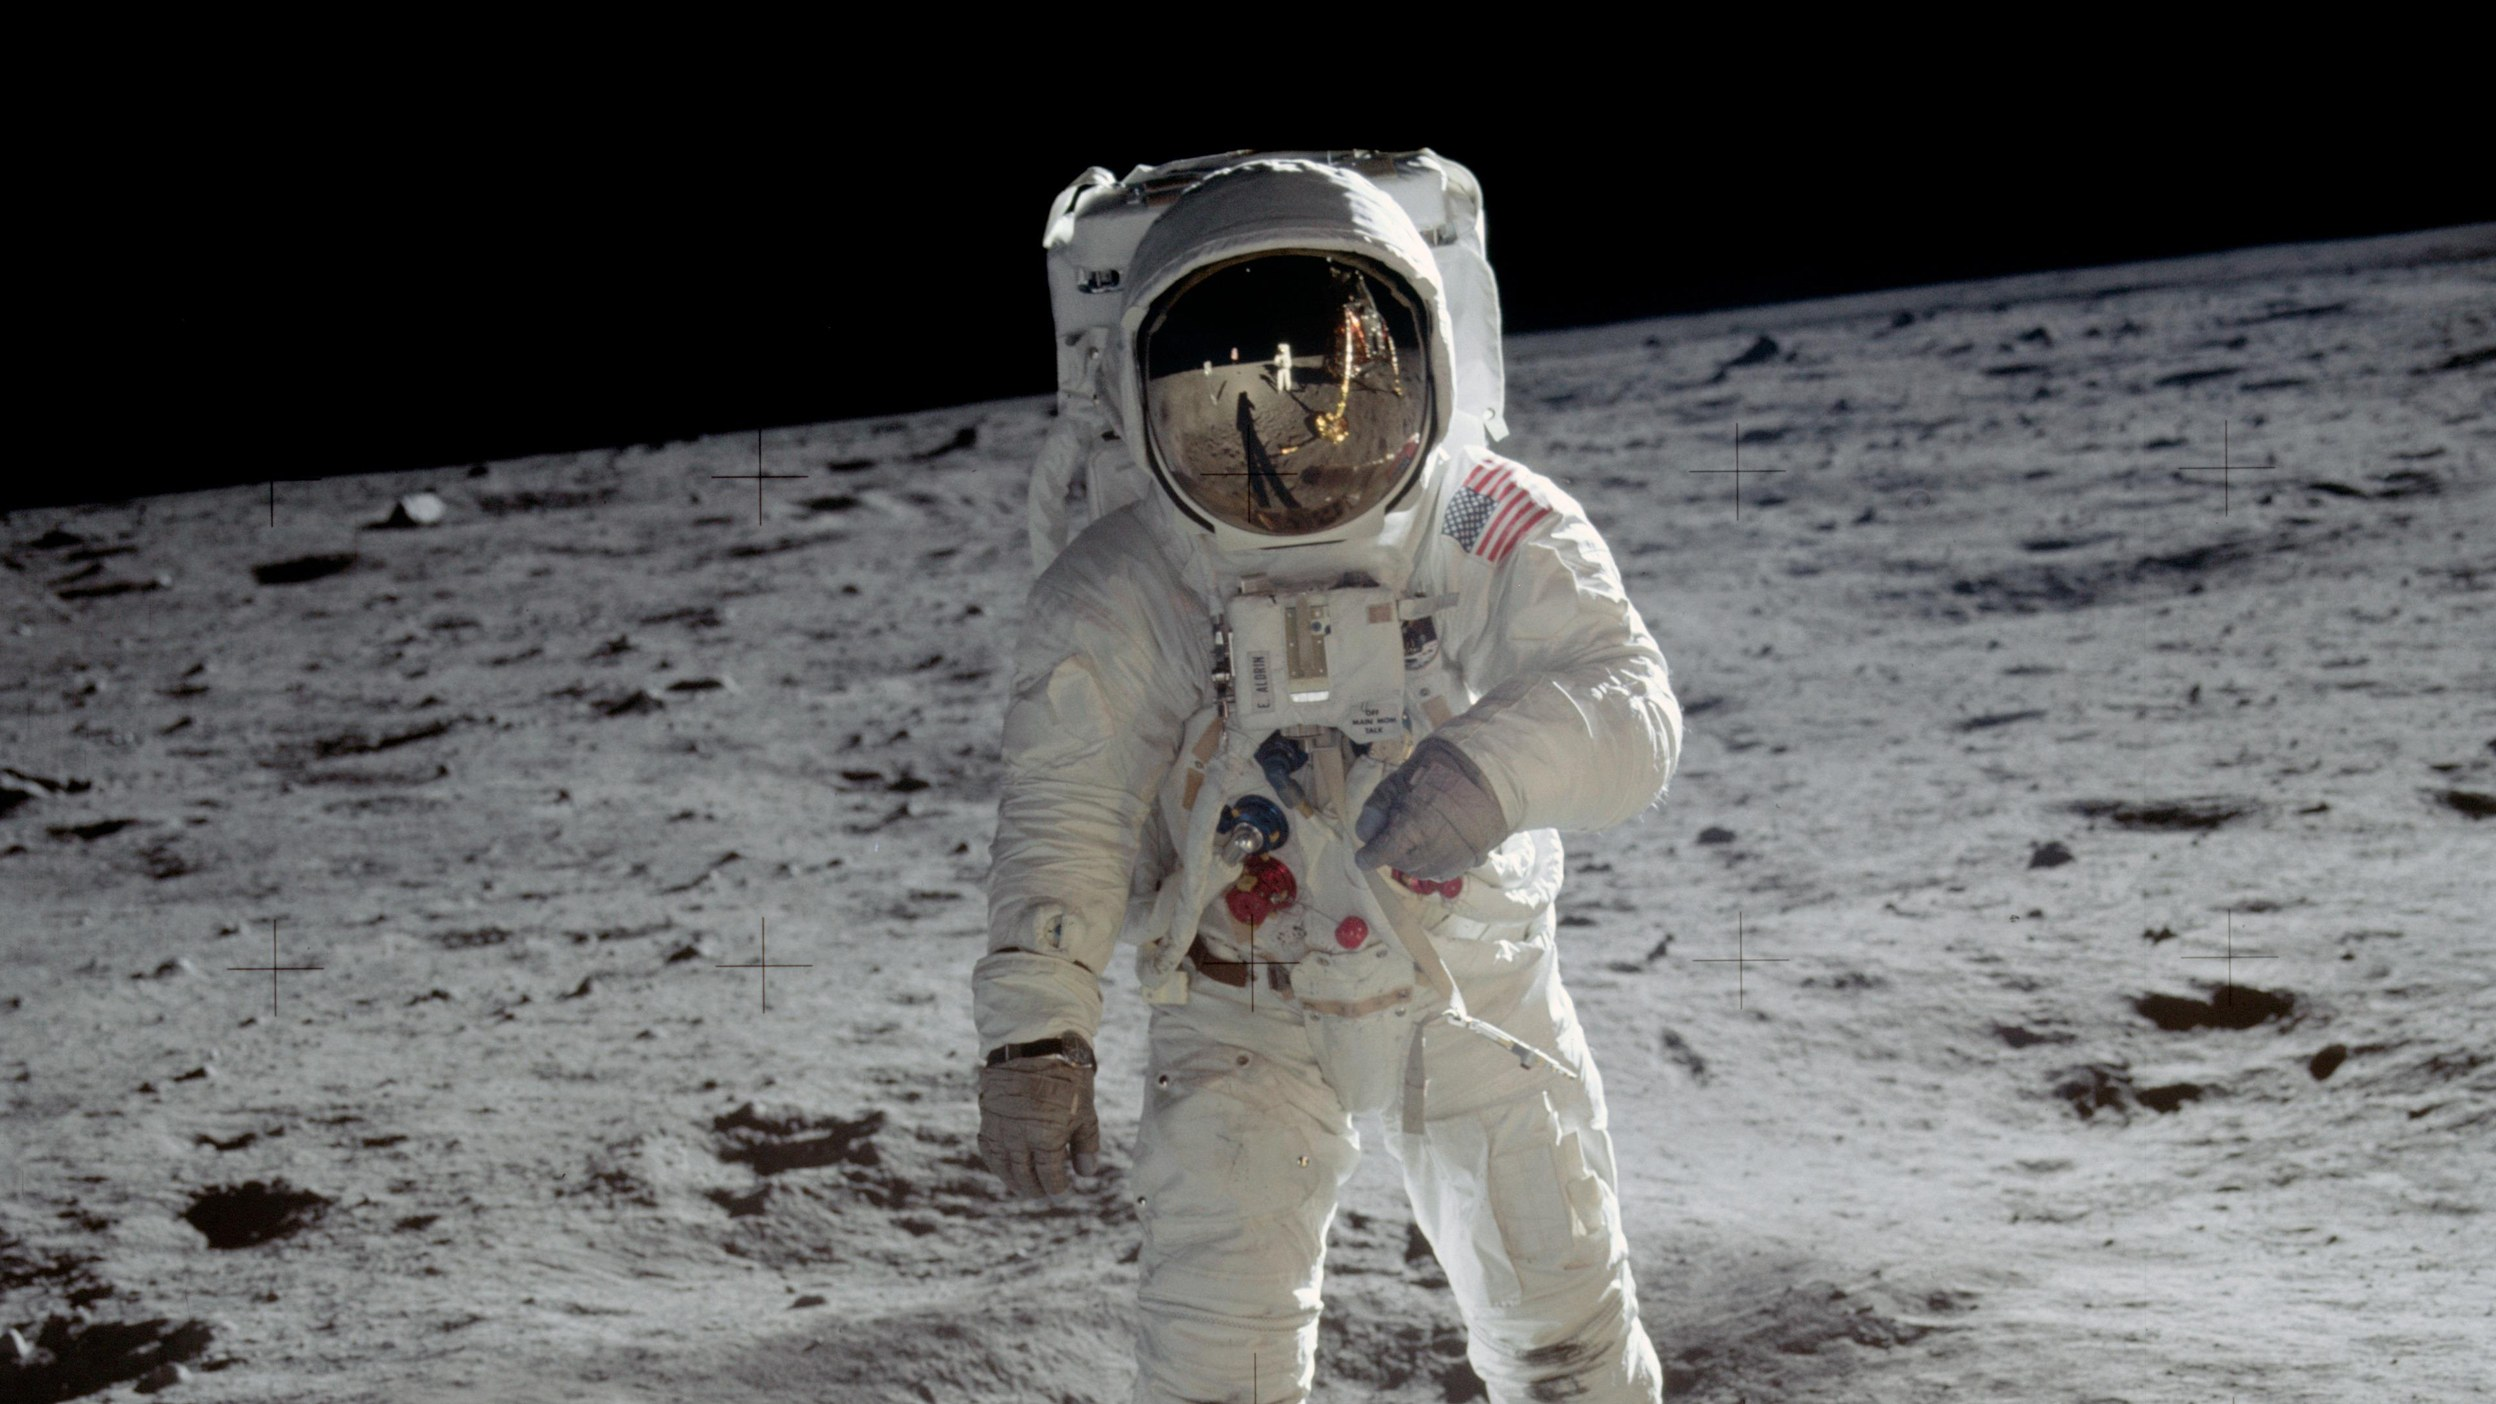 Buzz Aldrin on the surface of the moon during the Apollo 11 mission. (Photo by Neil Armstrong)